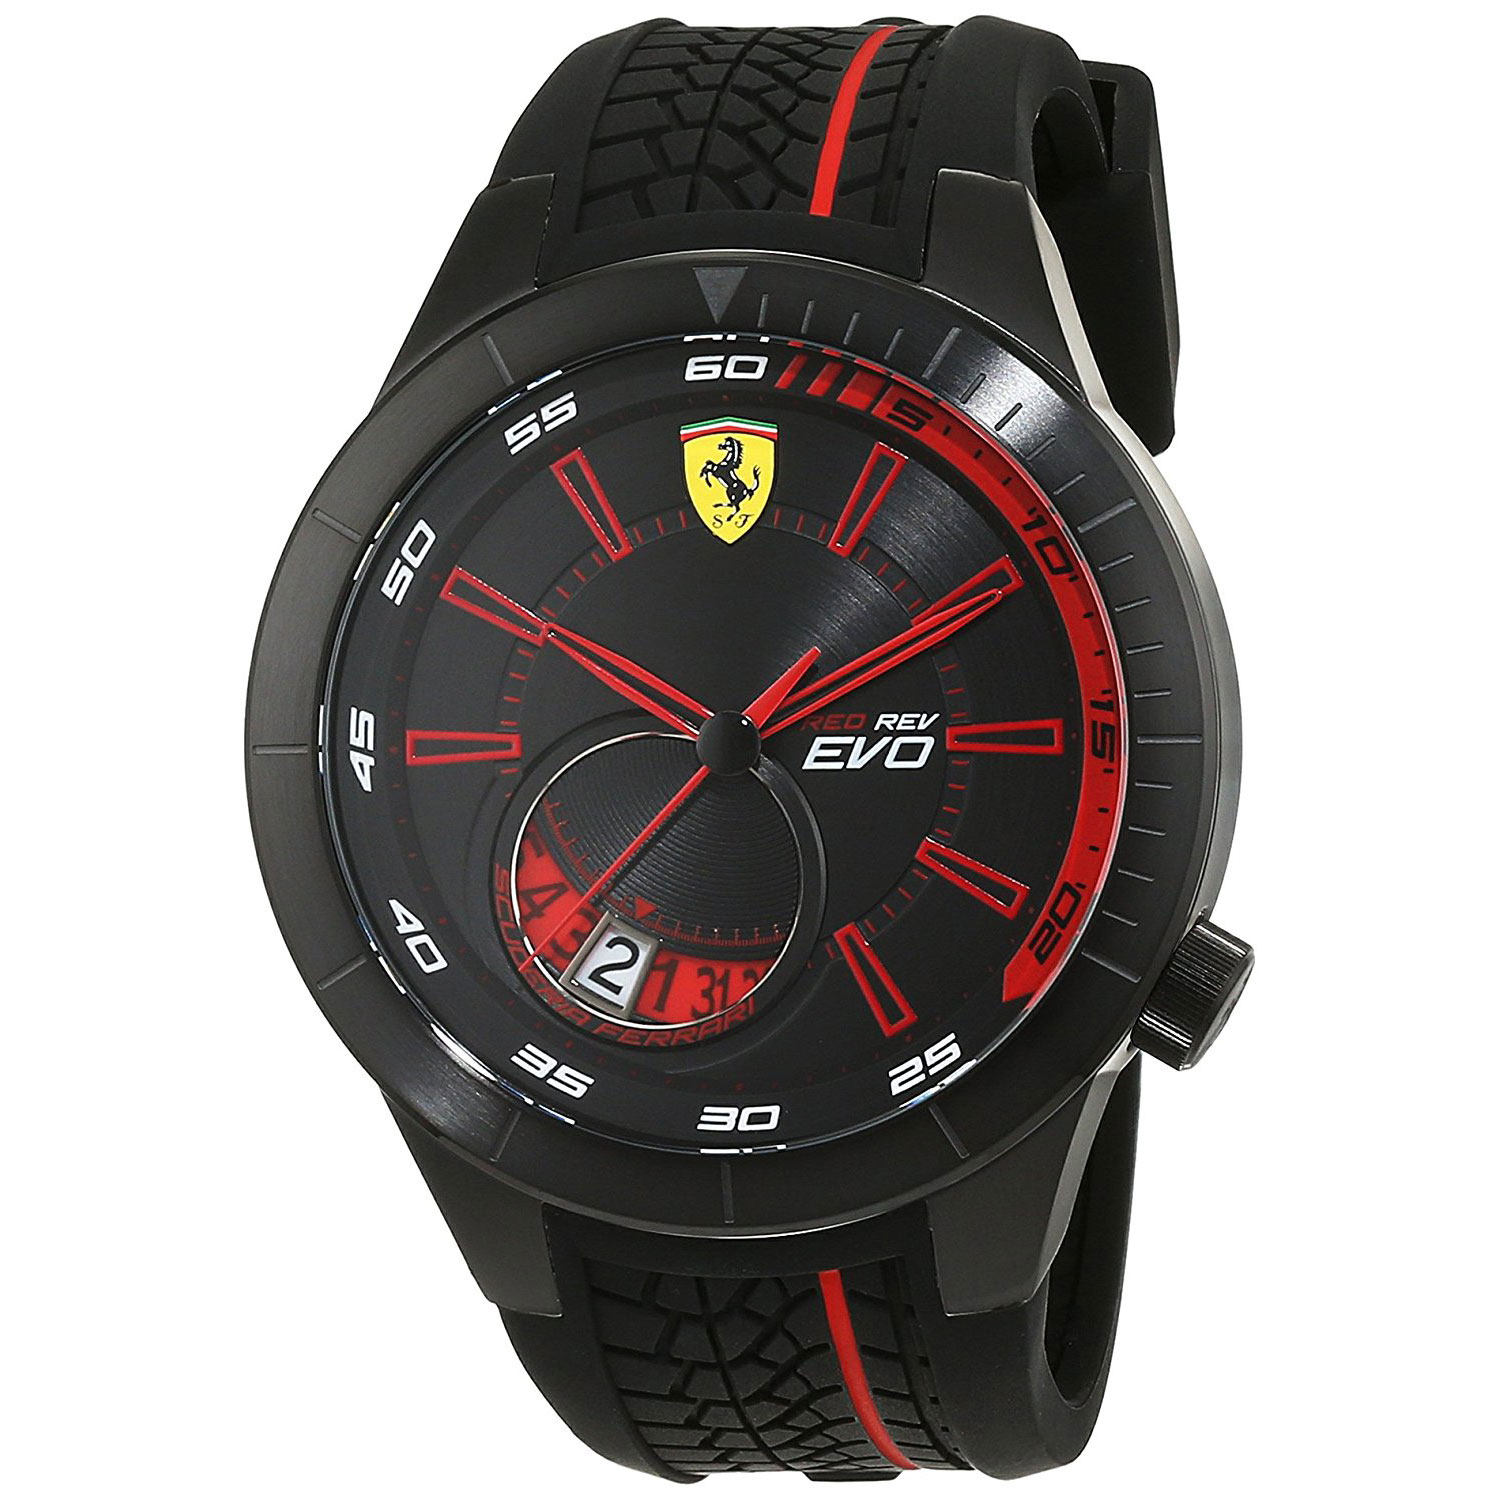 fb watches for shreeji men ferrari img trendz